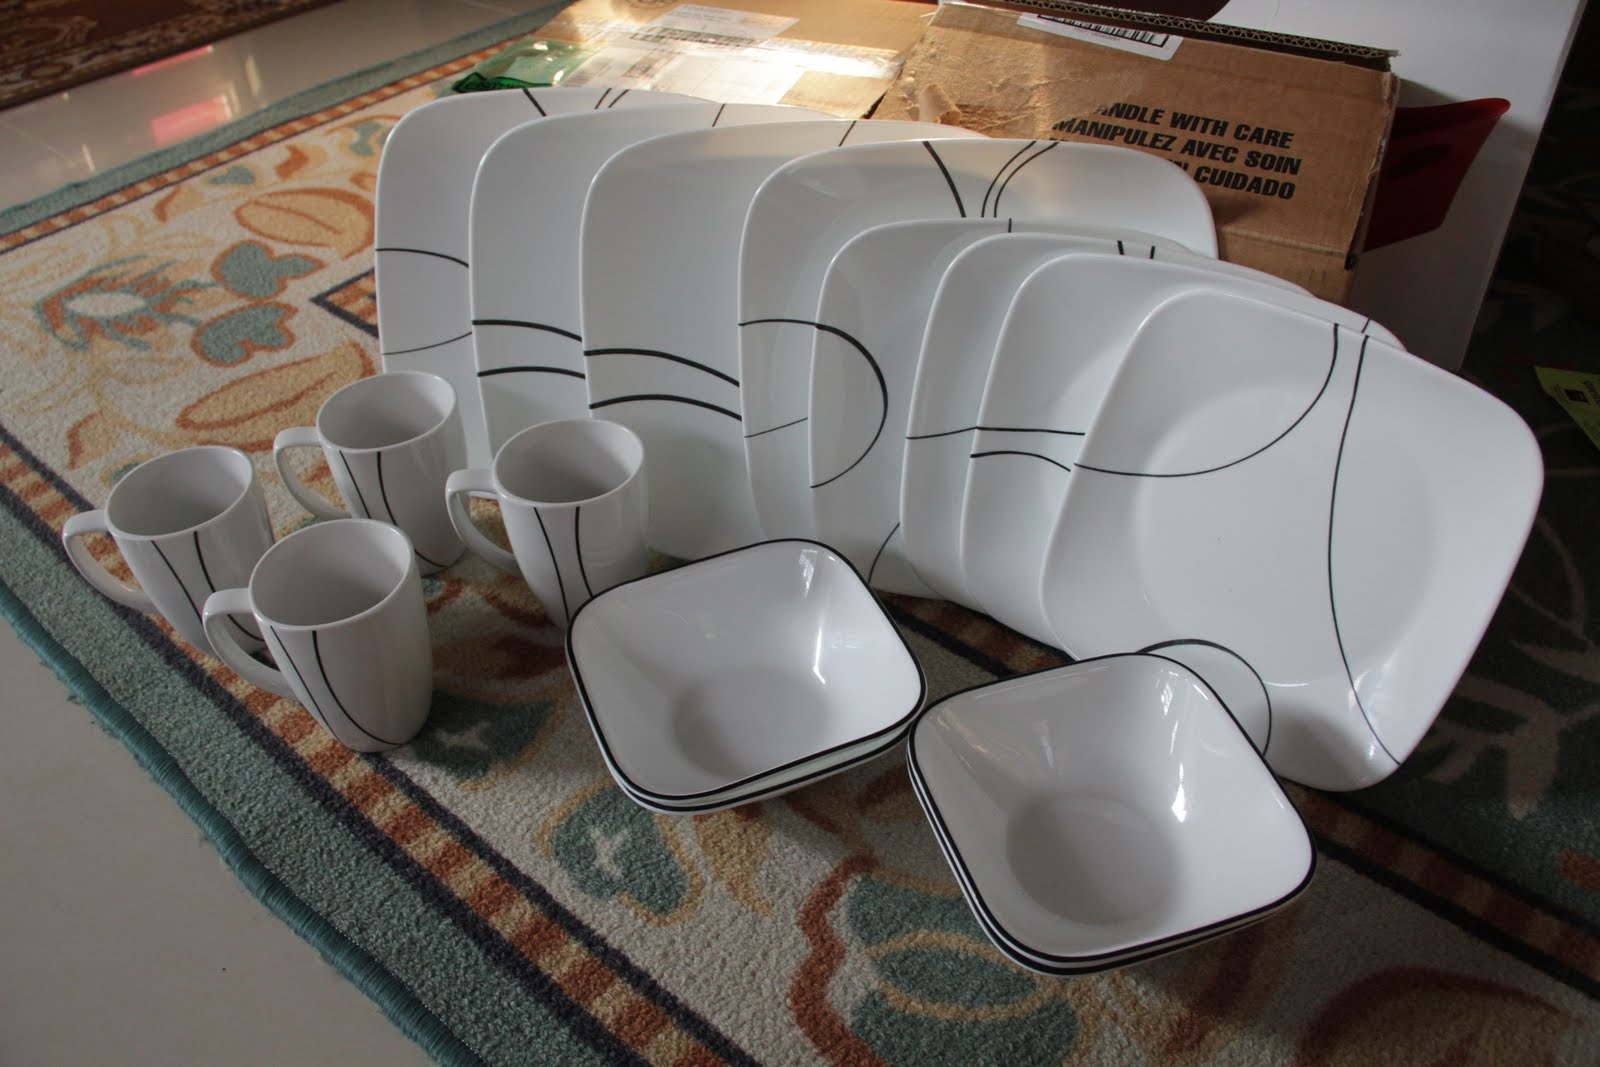 Square™-Simple-Lines-16-pc-Set & Fabulous Five: COACH u0026 CORELLE